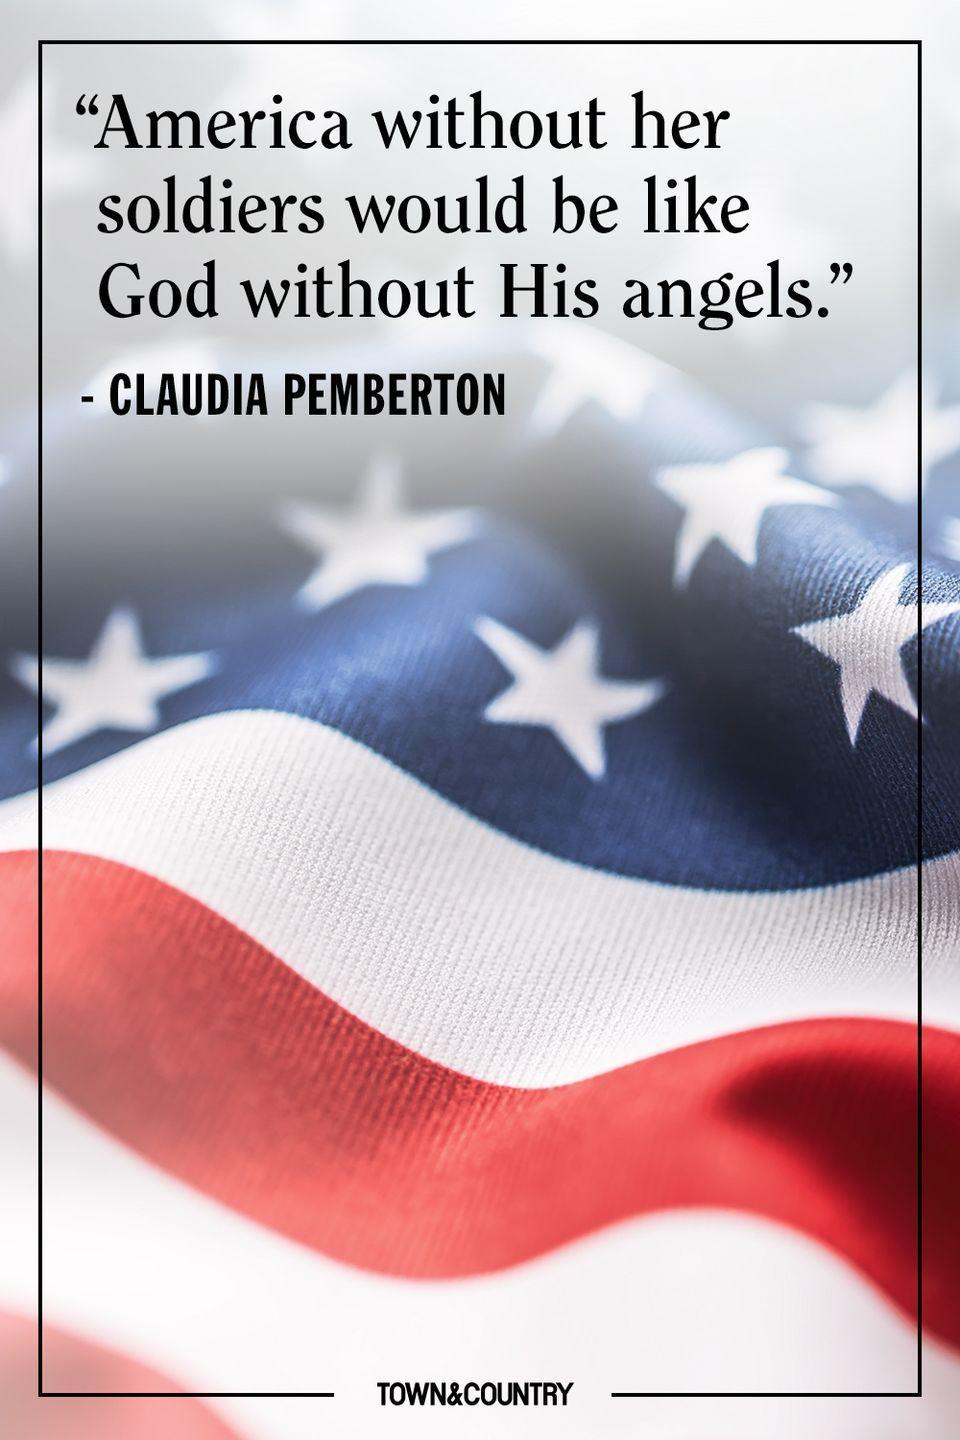 "<p>""America without her soliders would be like God without His angels.""</p><p>– Claudia Pemberton</p>"